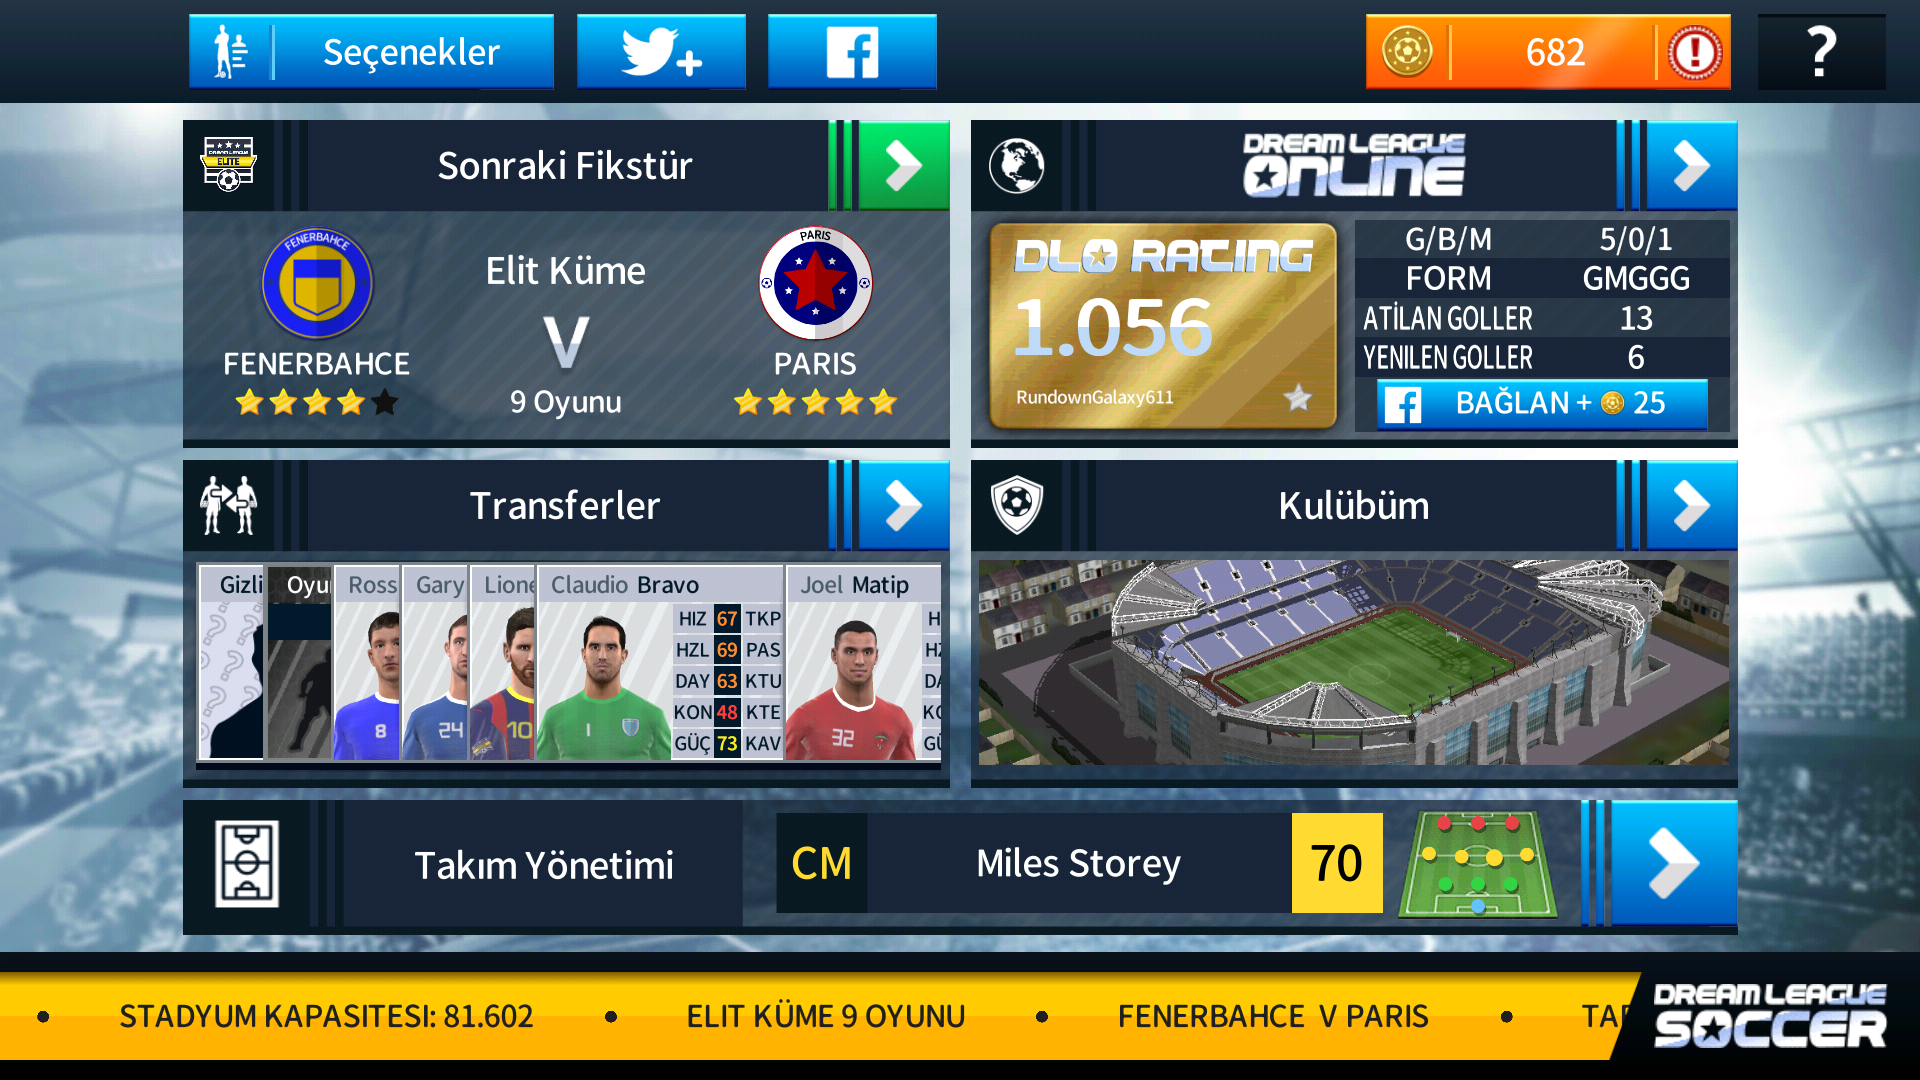 Dream league soccer 18 ayarlar, dream league soccer 2018, dream league soccer 2018 görüntü ayarları, dream league soccer online nasıl oynanır, dream league soccer 2018 ses ayarları, Dream league soccer 2018 ayarlar